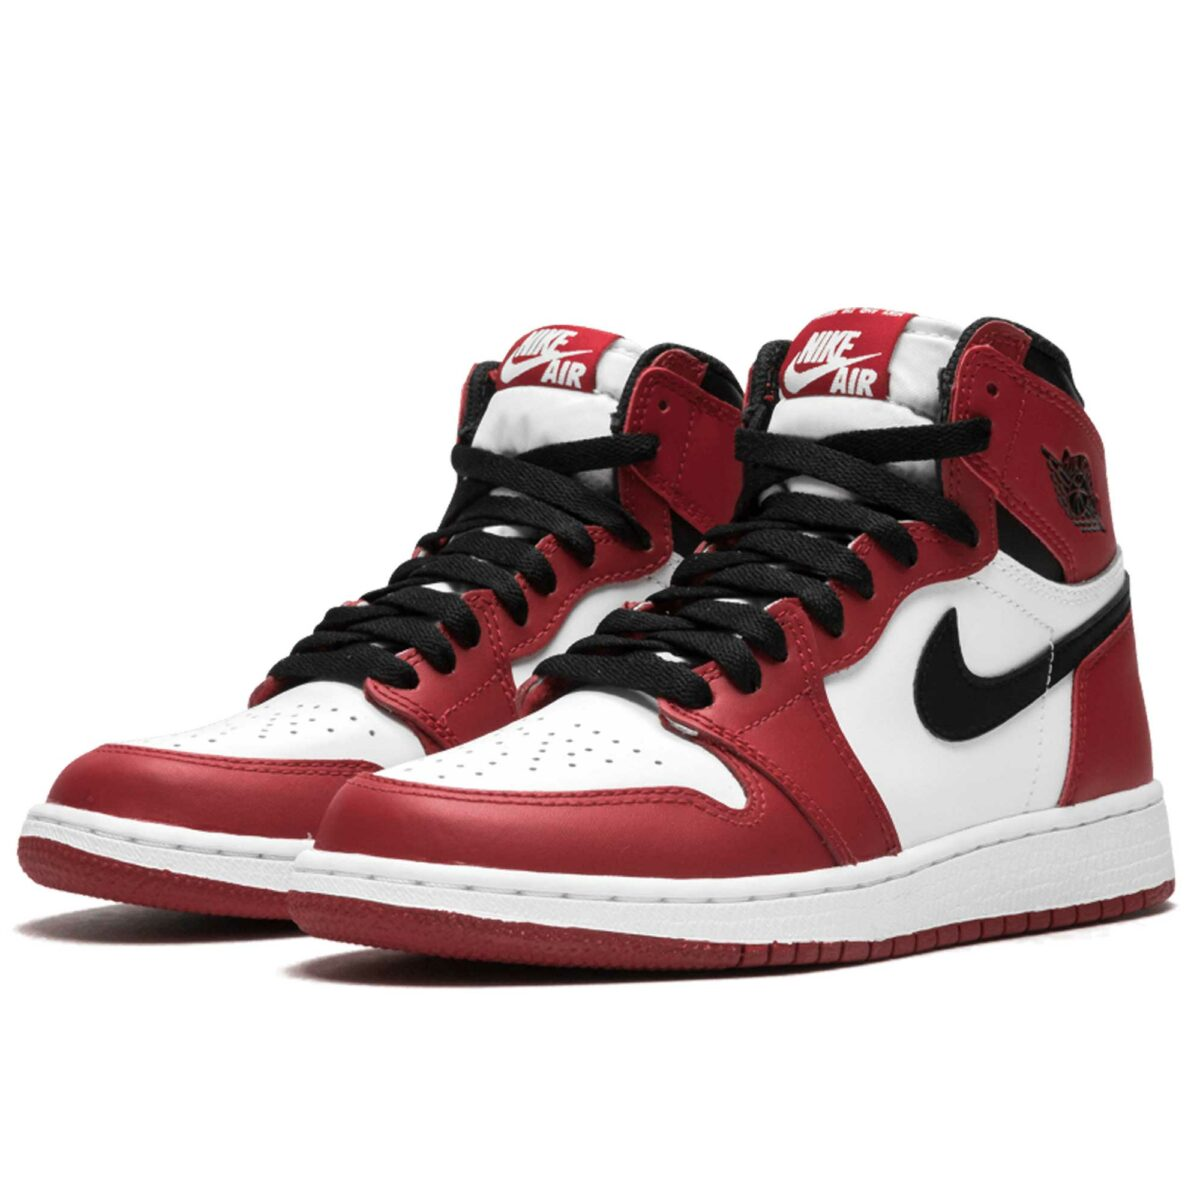 Jordan 1 retro high og red white 575441_101 купить